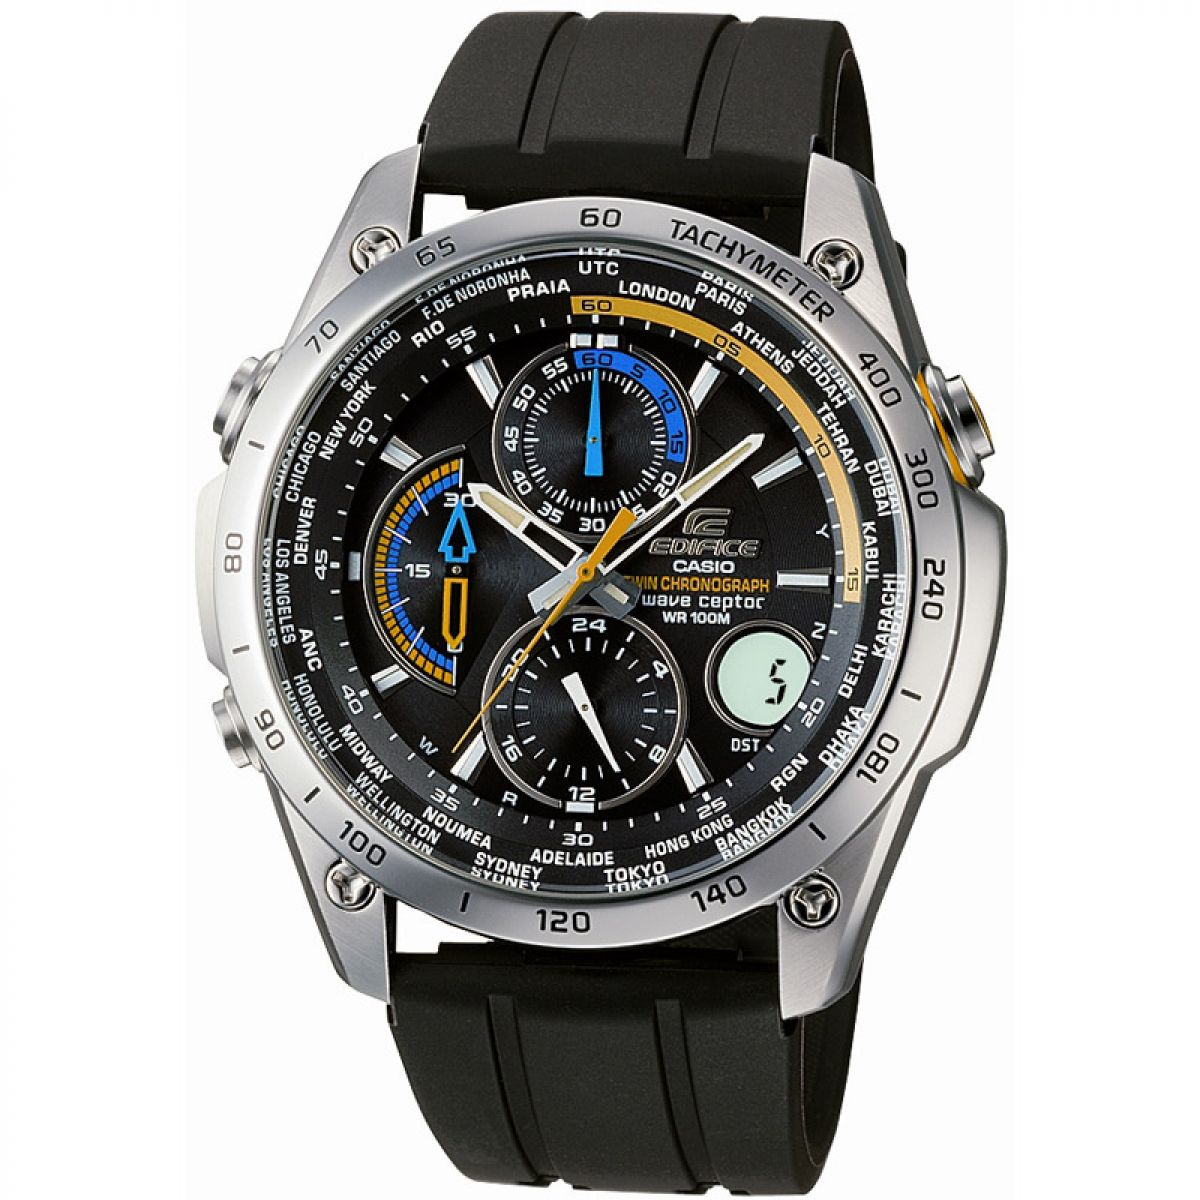 Gents Casio Edifice Wave Ceptor Alarm Chronograph Watch  Eqw